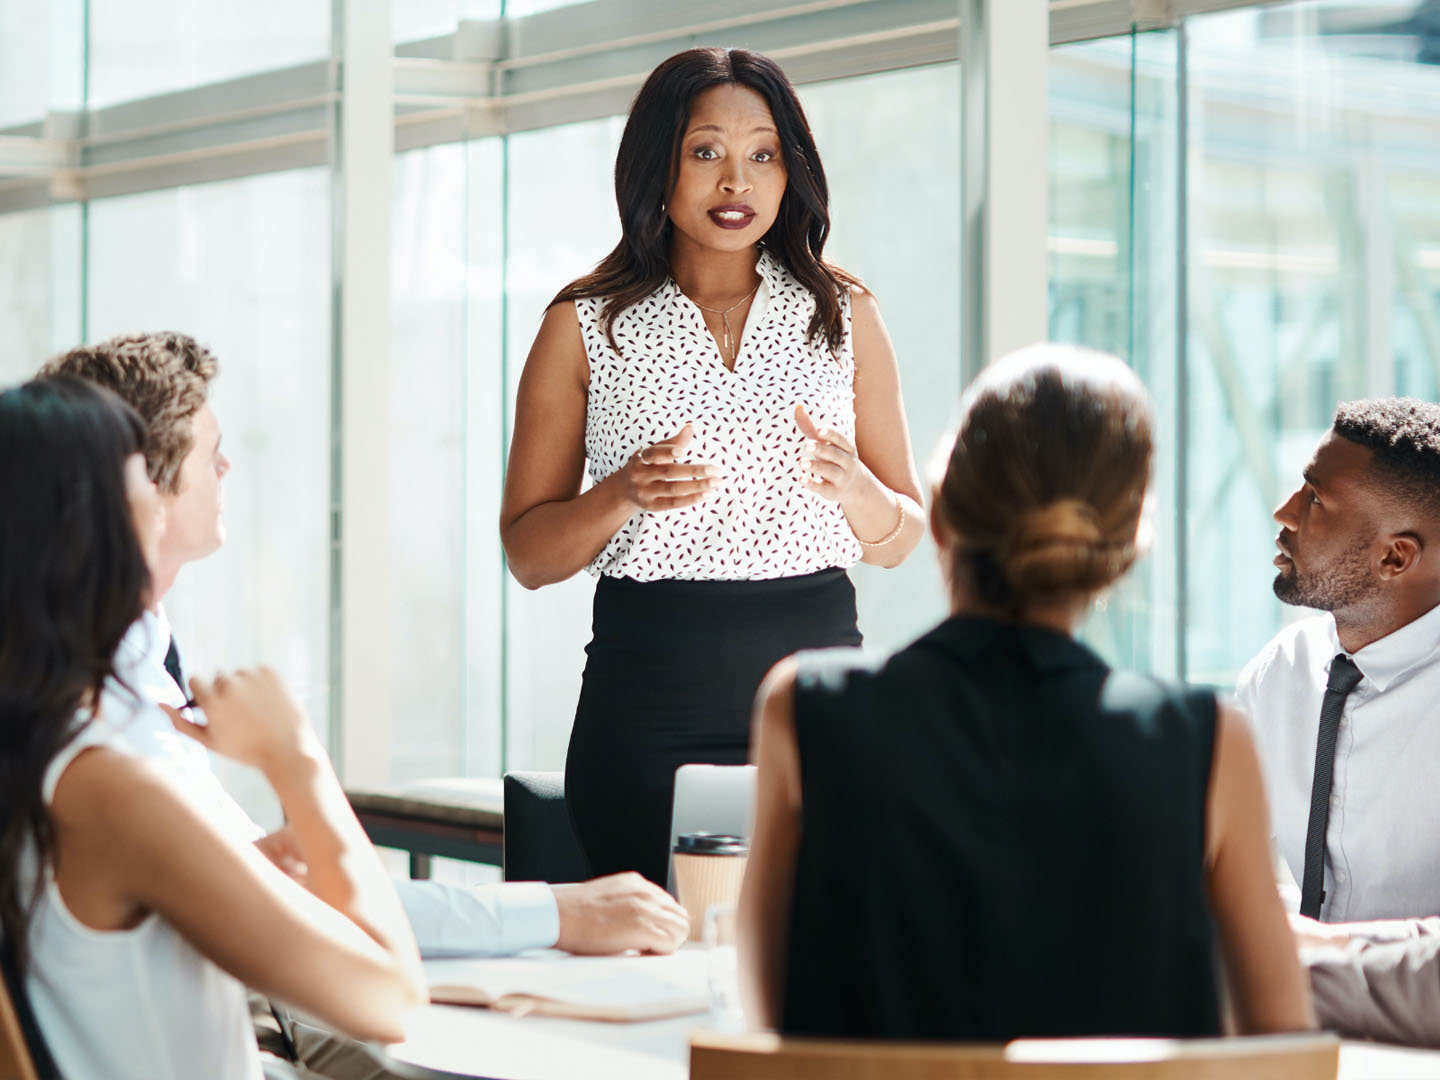 Woman in office discussing ideas with team of four people.